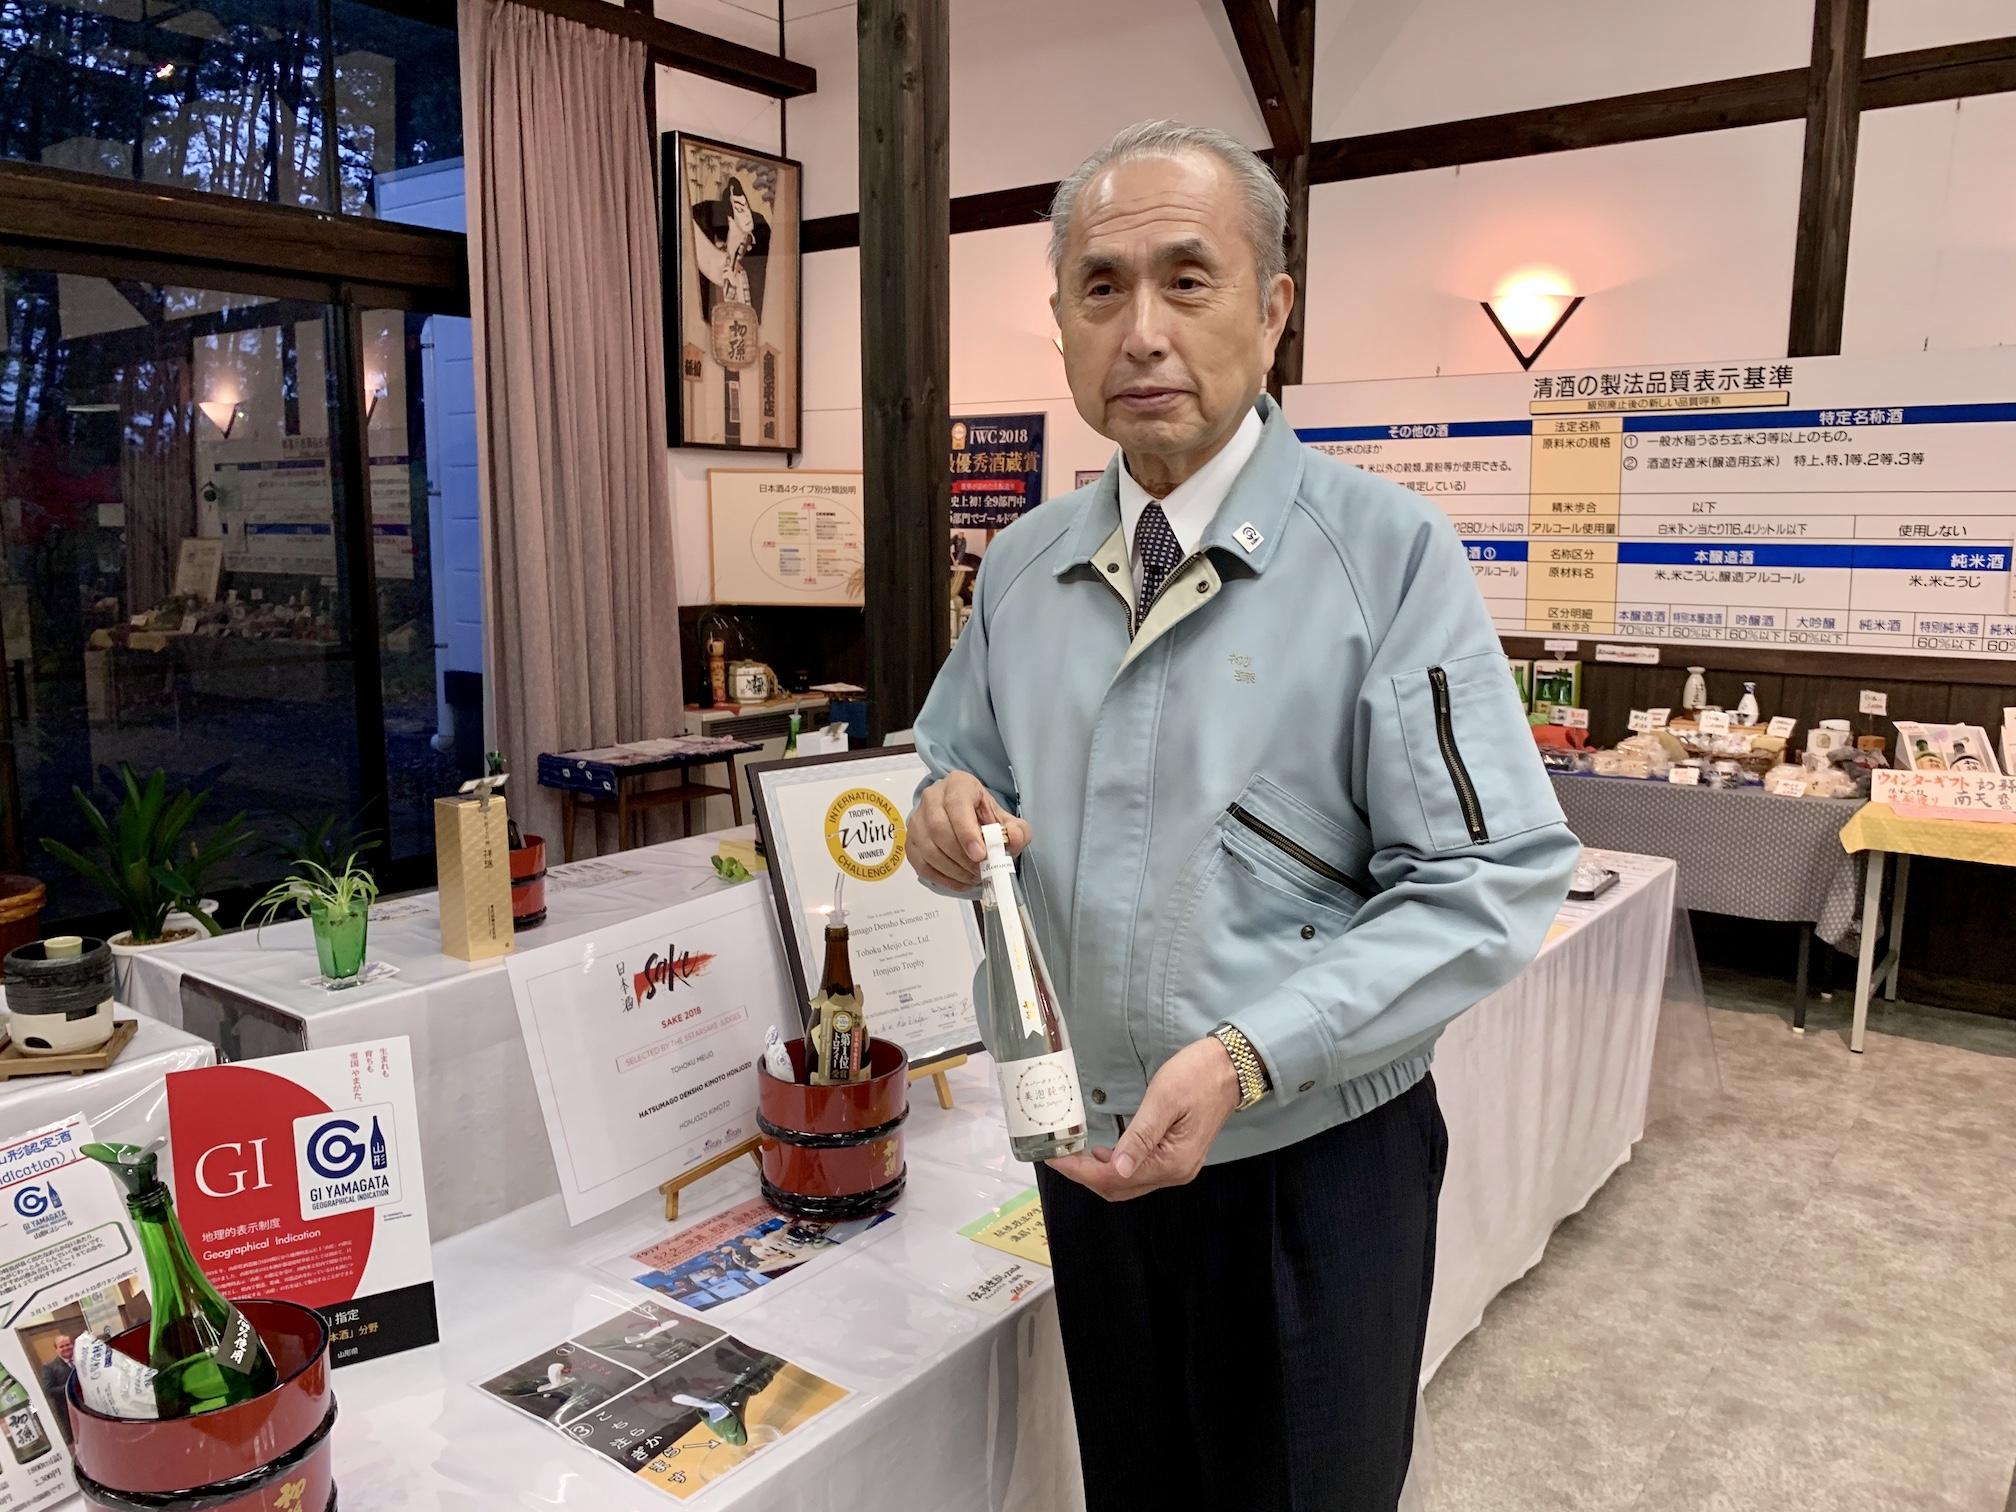 Junji Sato, president of Tohoku Meijo Co. in Sakata makes award-winning sake